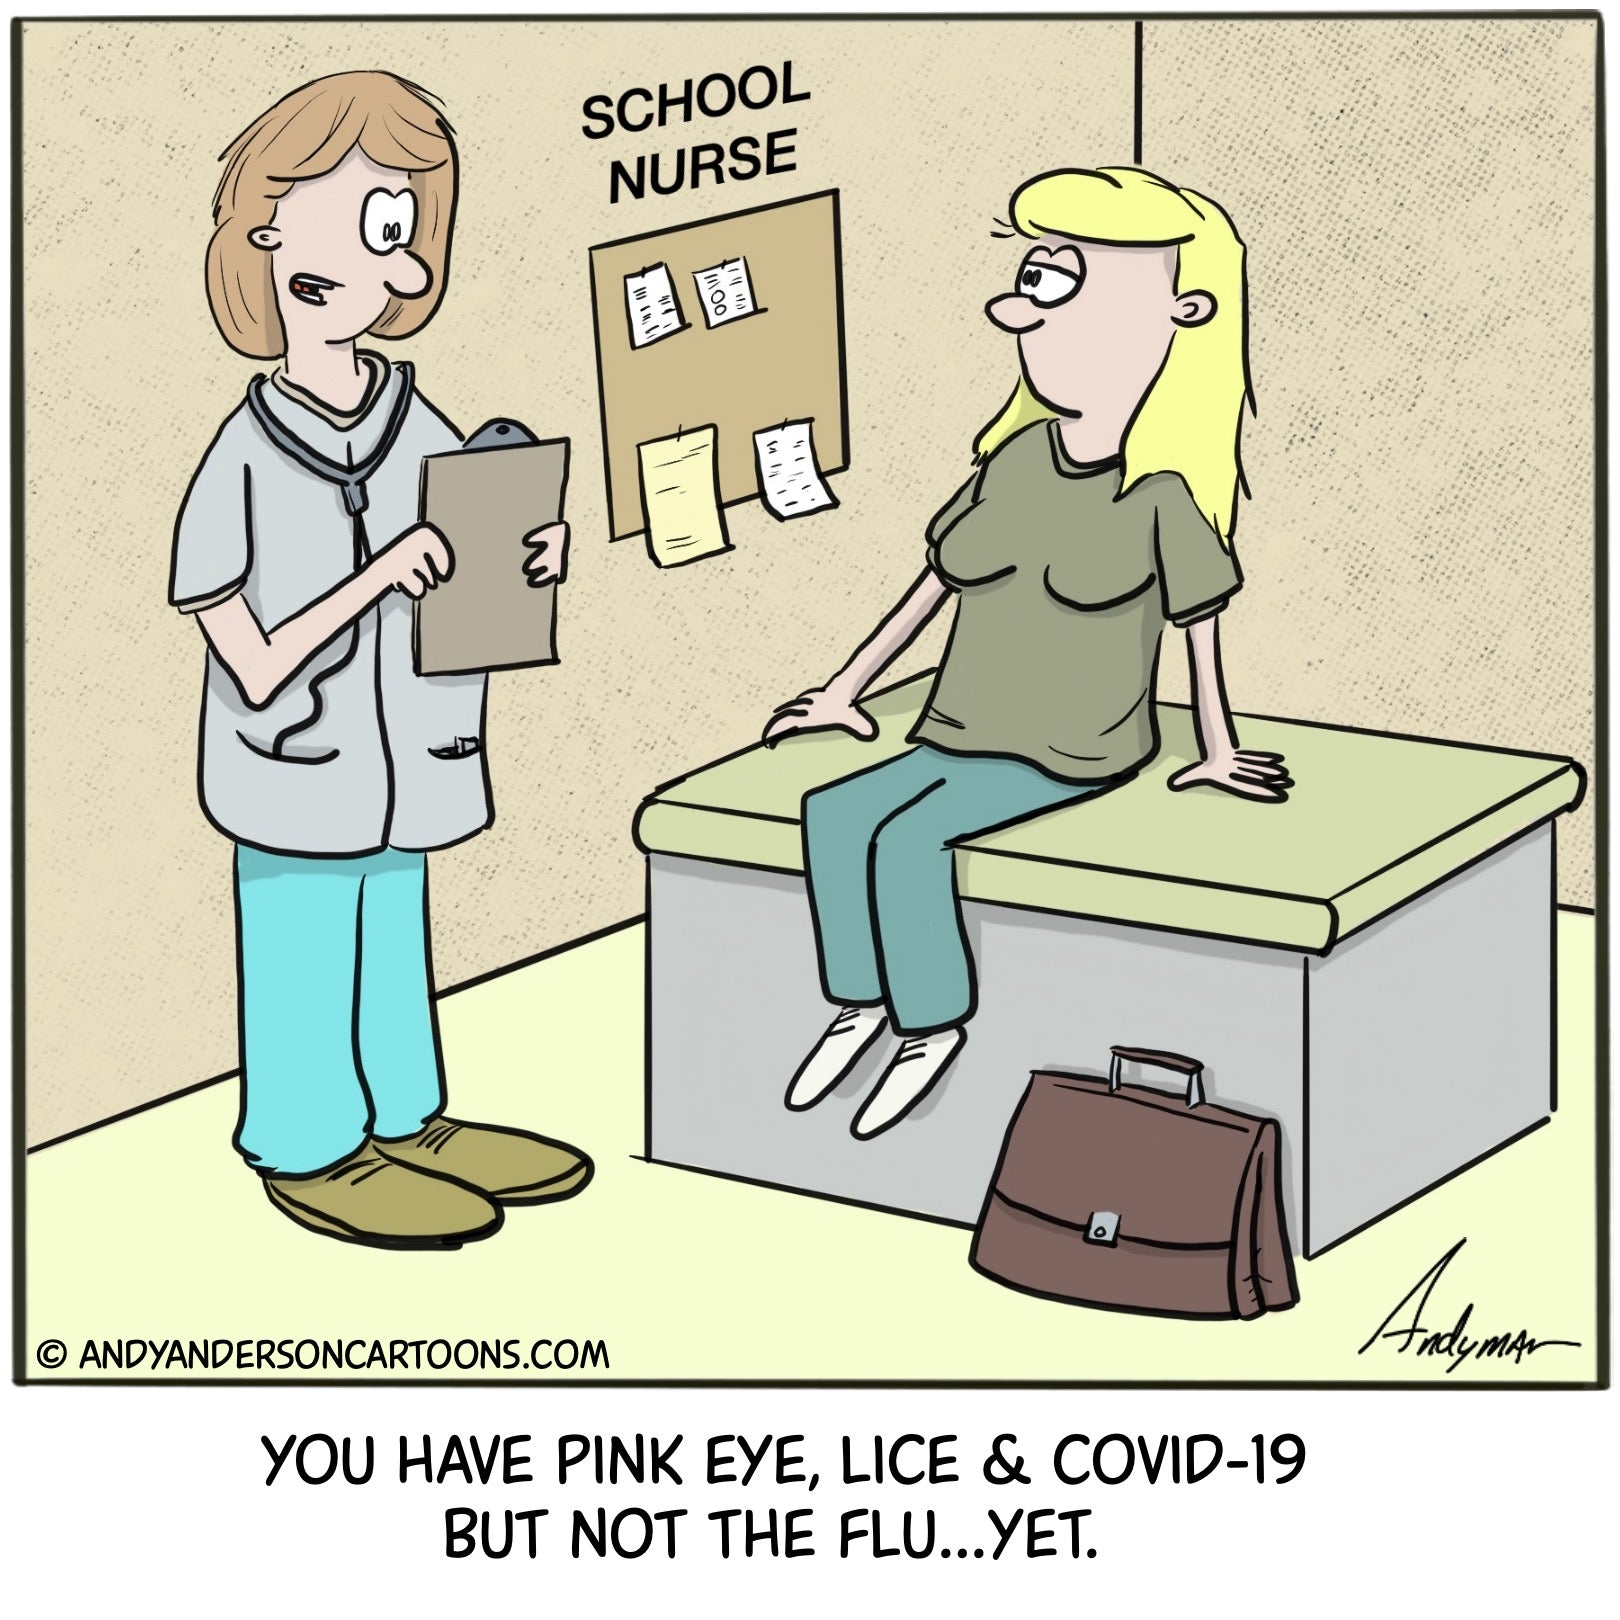 Cartoon about teachers going back to school and getting pink eye, lice COVID-19 but not the flu yet